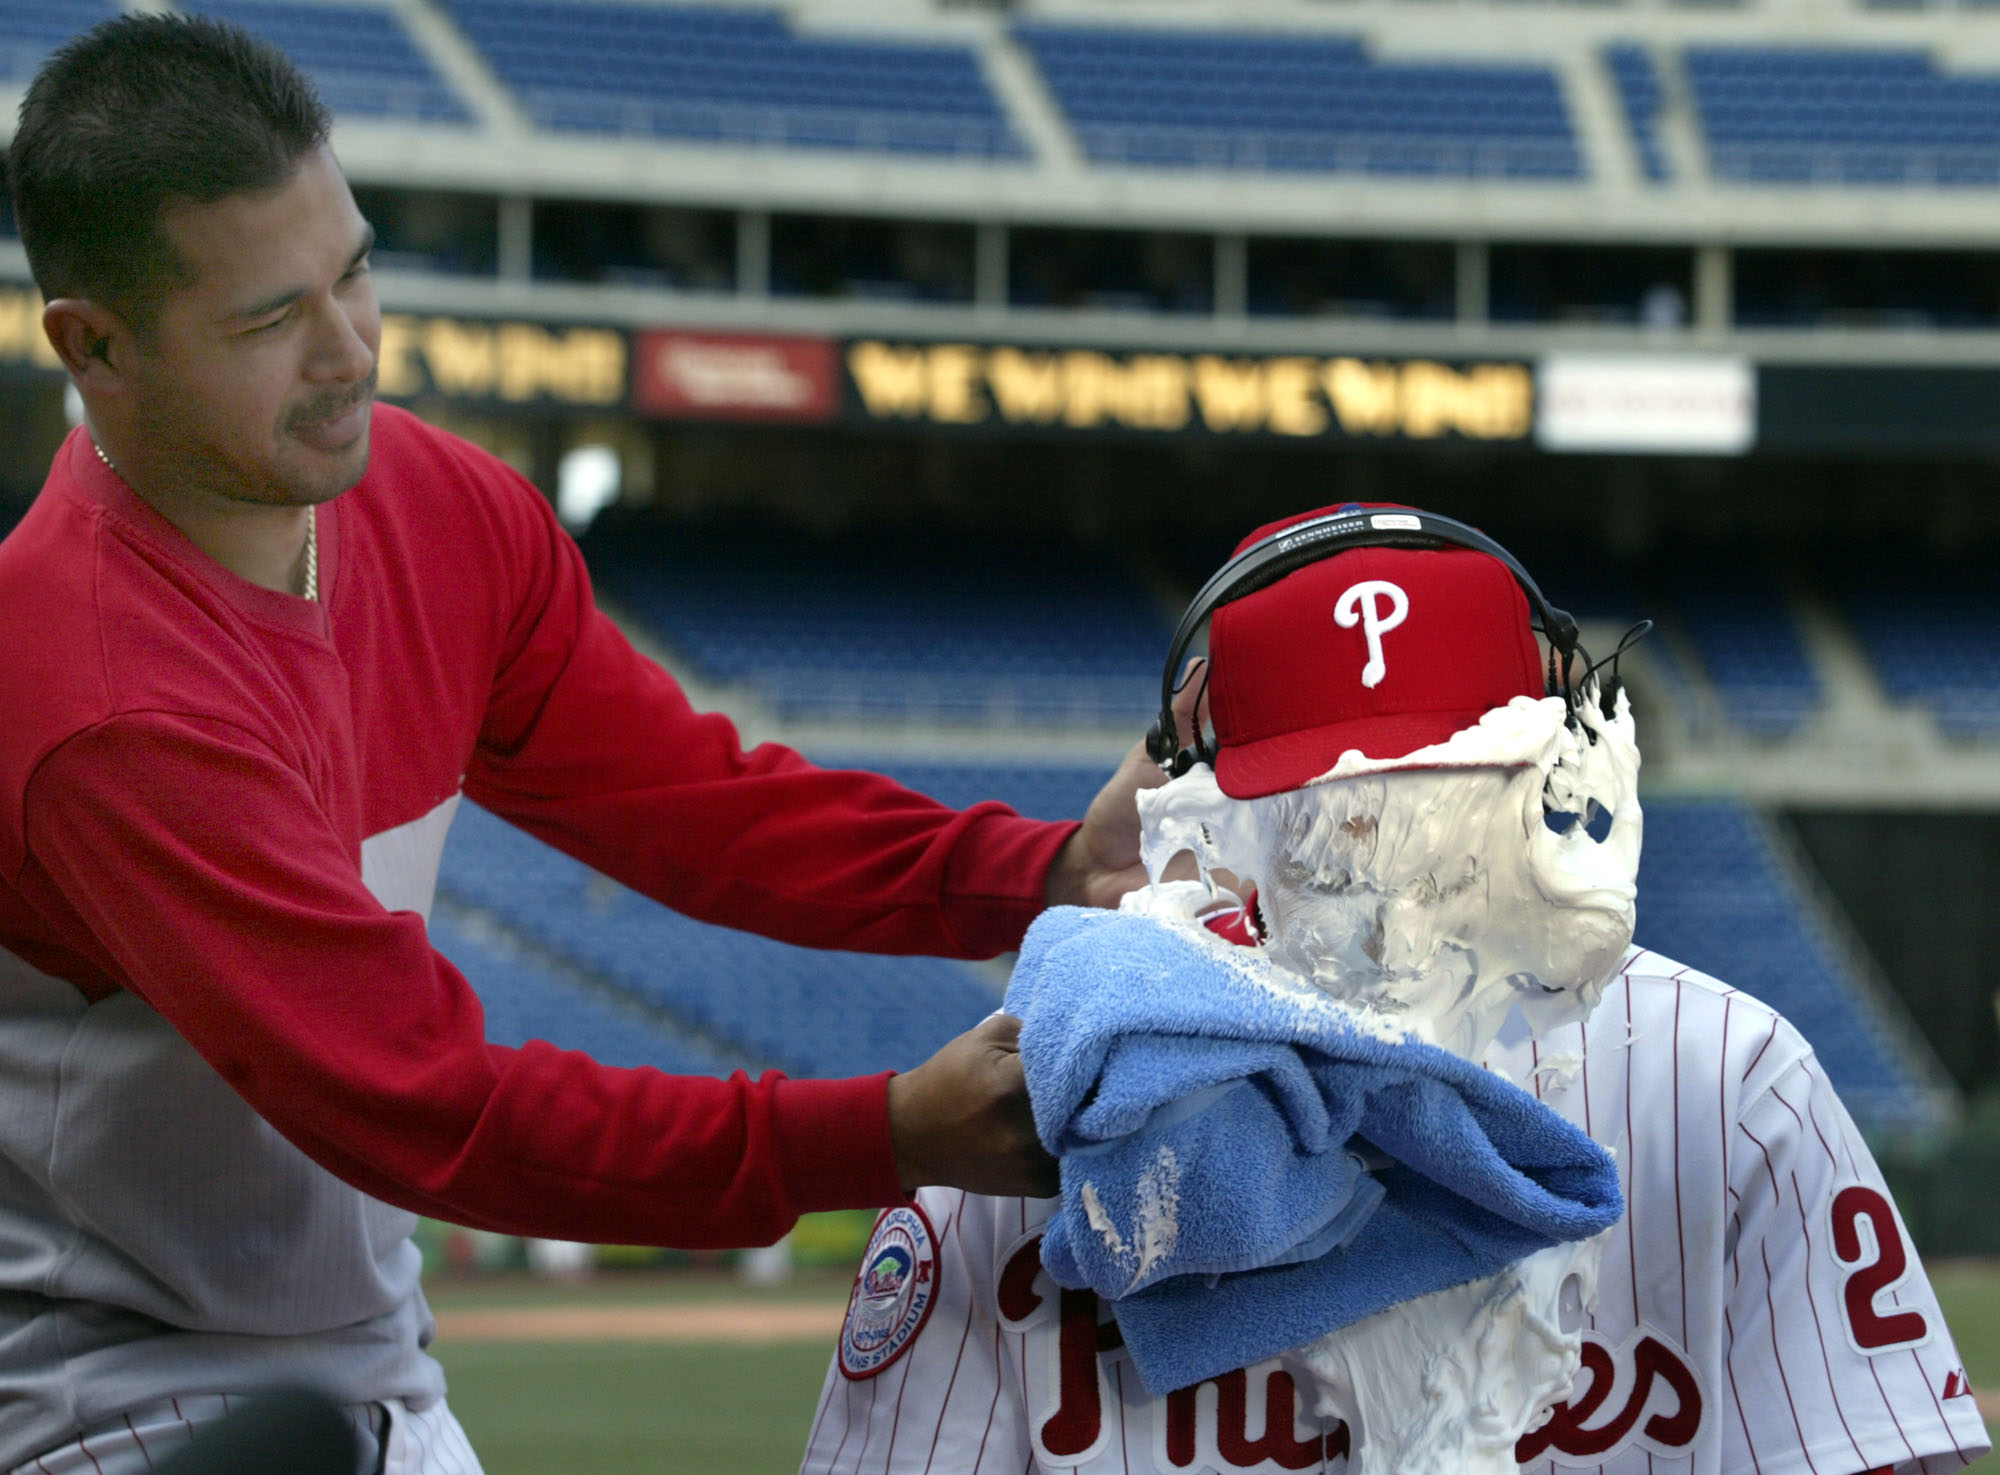 Phillies/Rockies game action. Phillies Chase Utley gets pied by Tomas Perez during an interview after the game where he hit his first major league homer/hit and grand slam in the 3rd inning off Rockies Aaron Cook. 04/24/03 DN Steven M. Falk